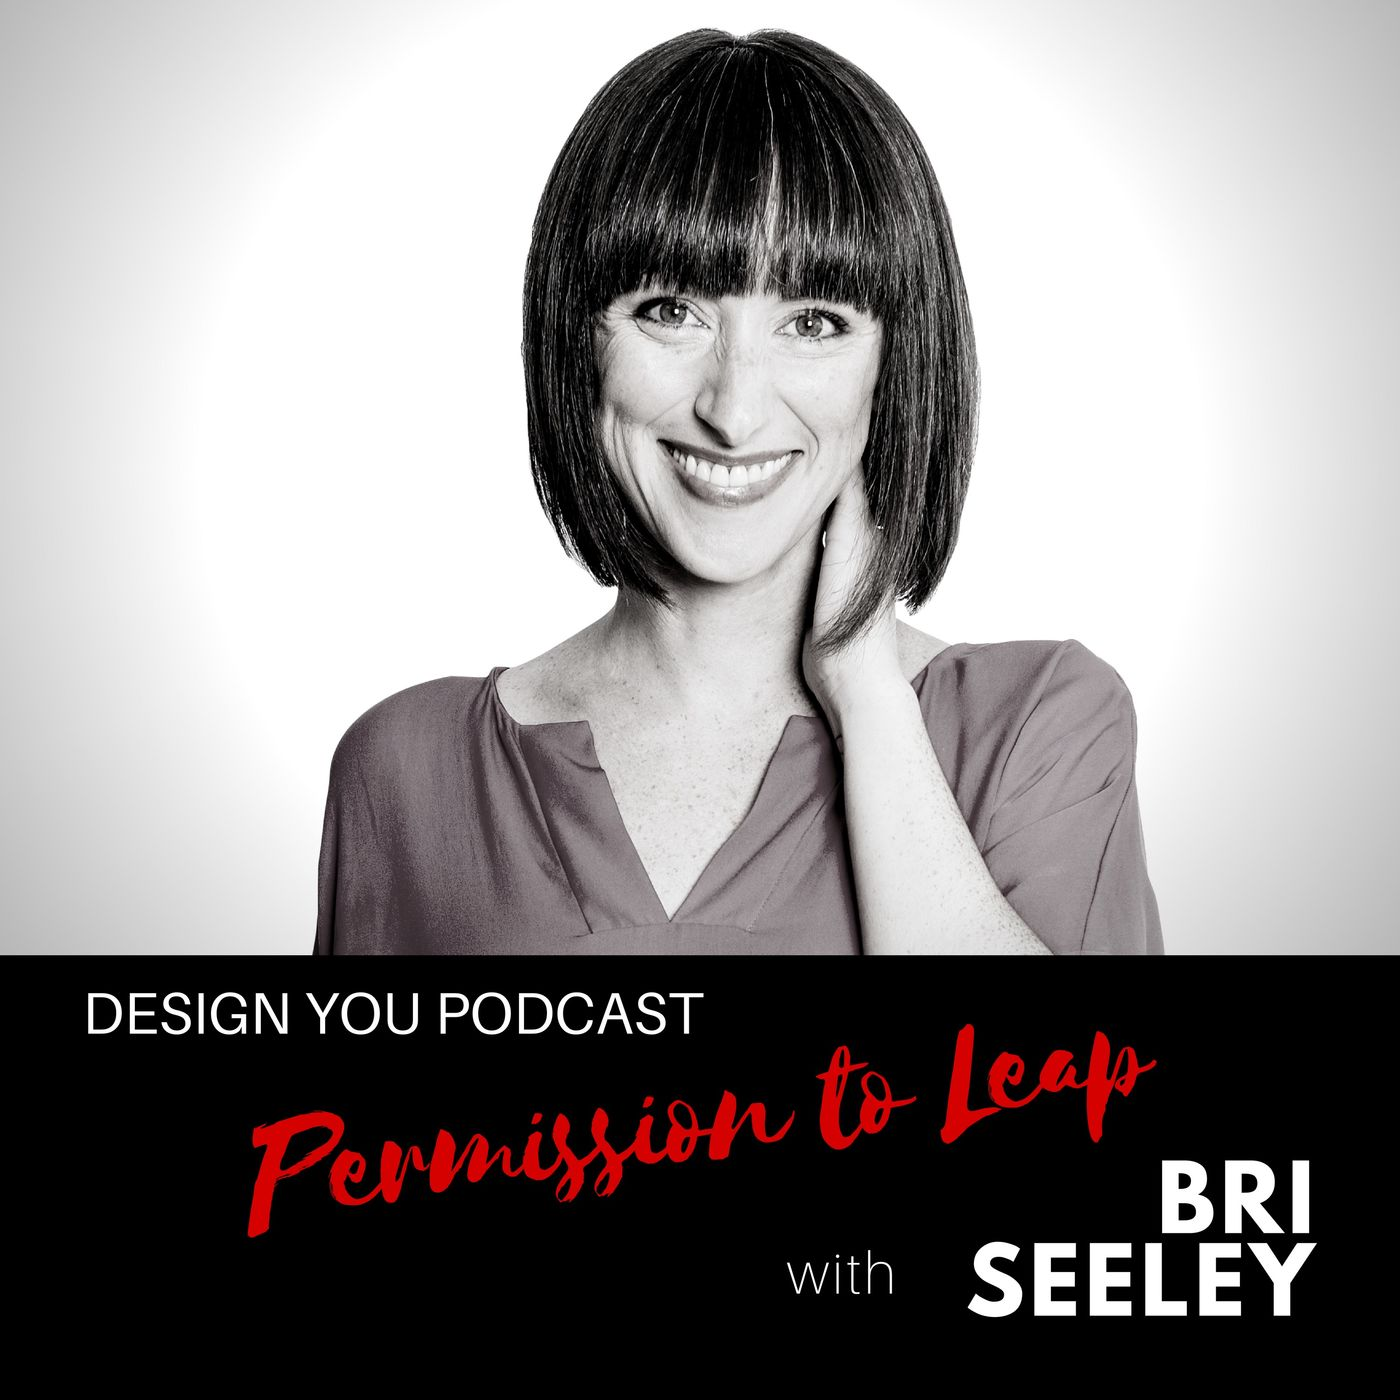 EP 036 – Permission to Leap with Bri Seeley